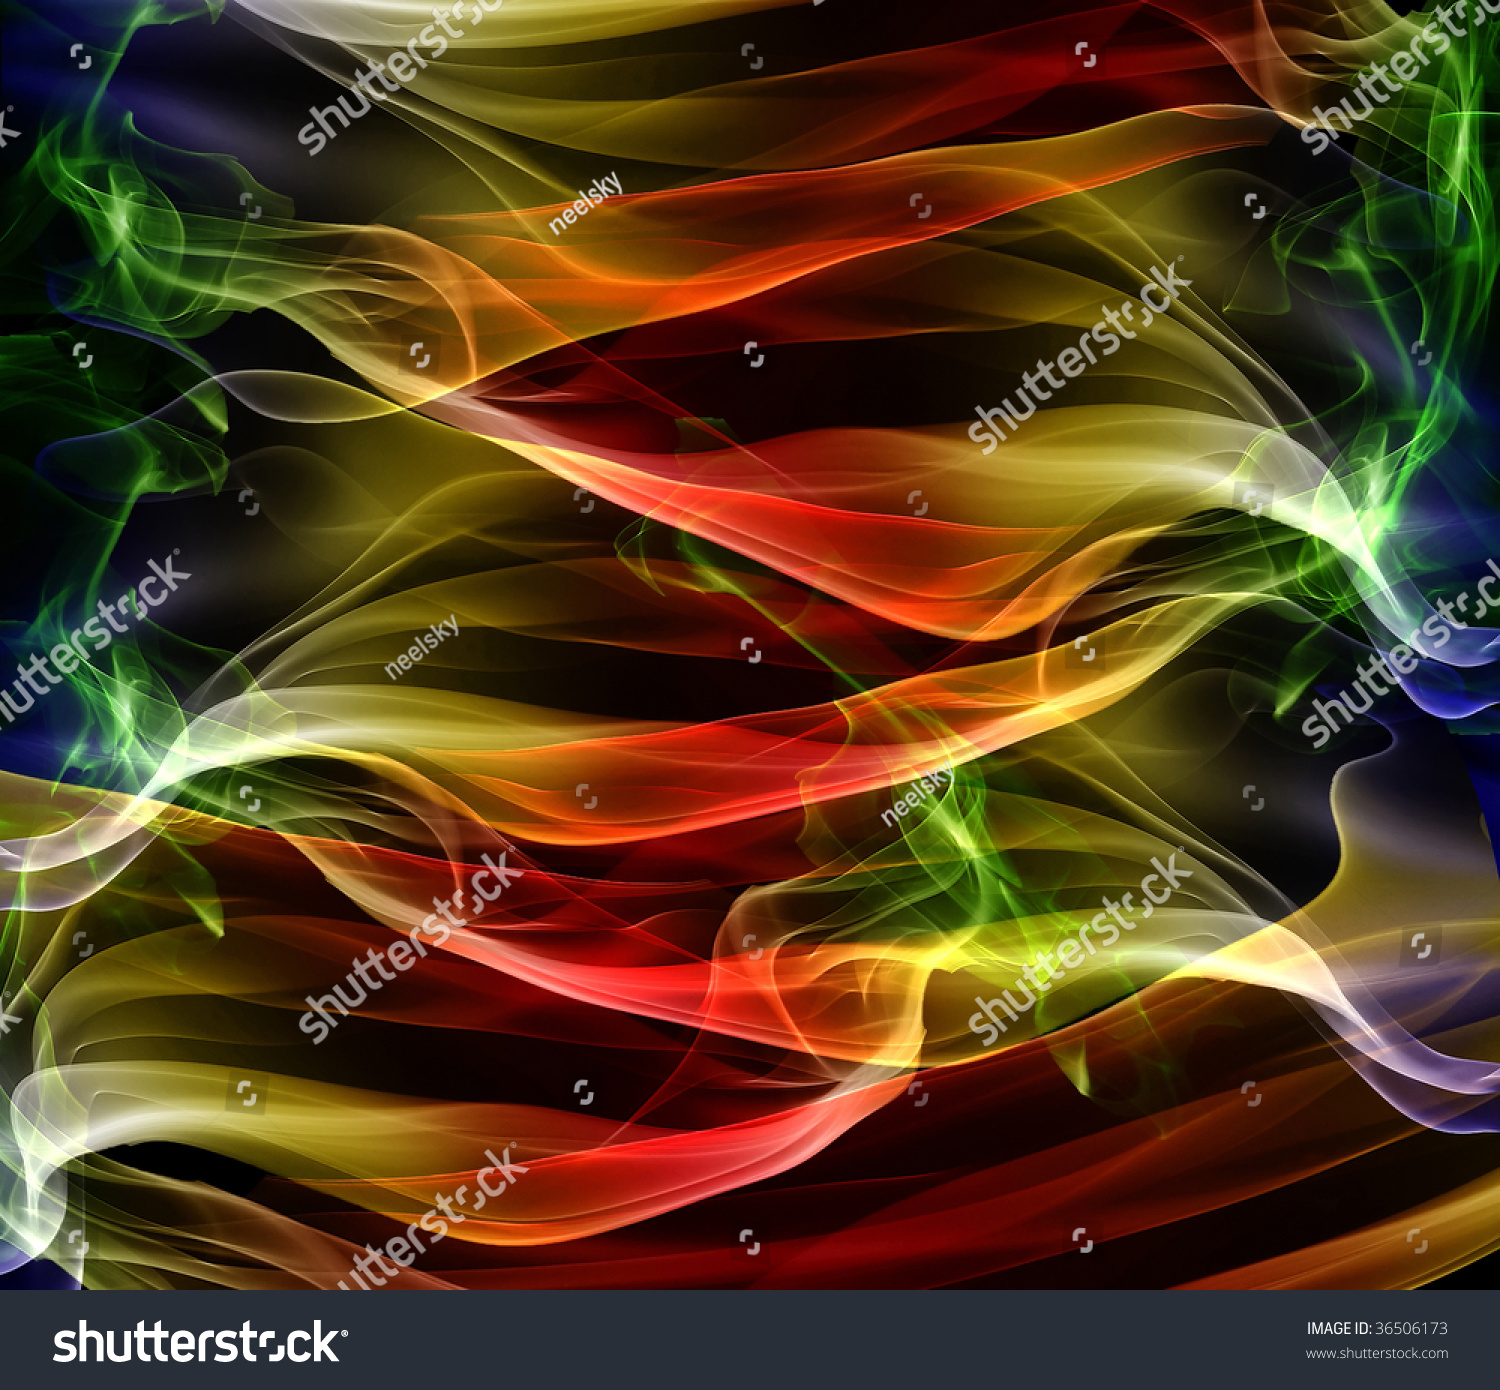 Vibrant Colorful Abstract Background Wallpaper With Smoke